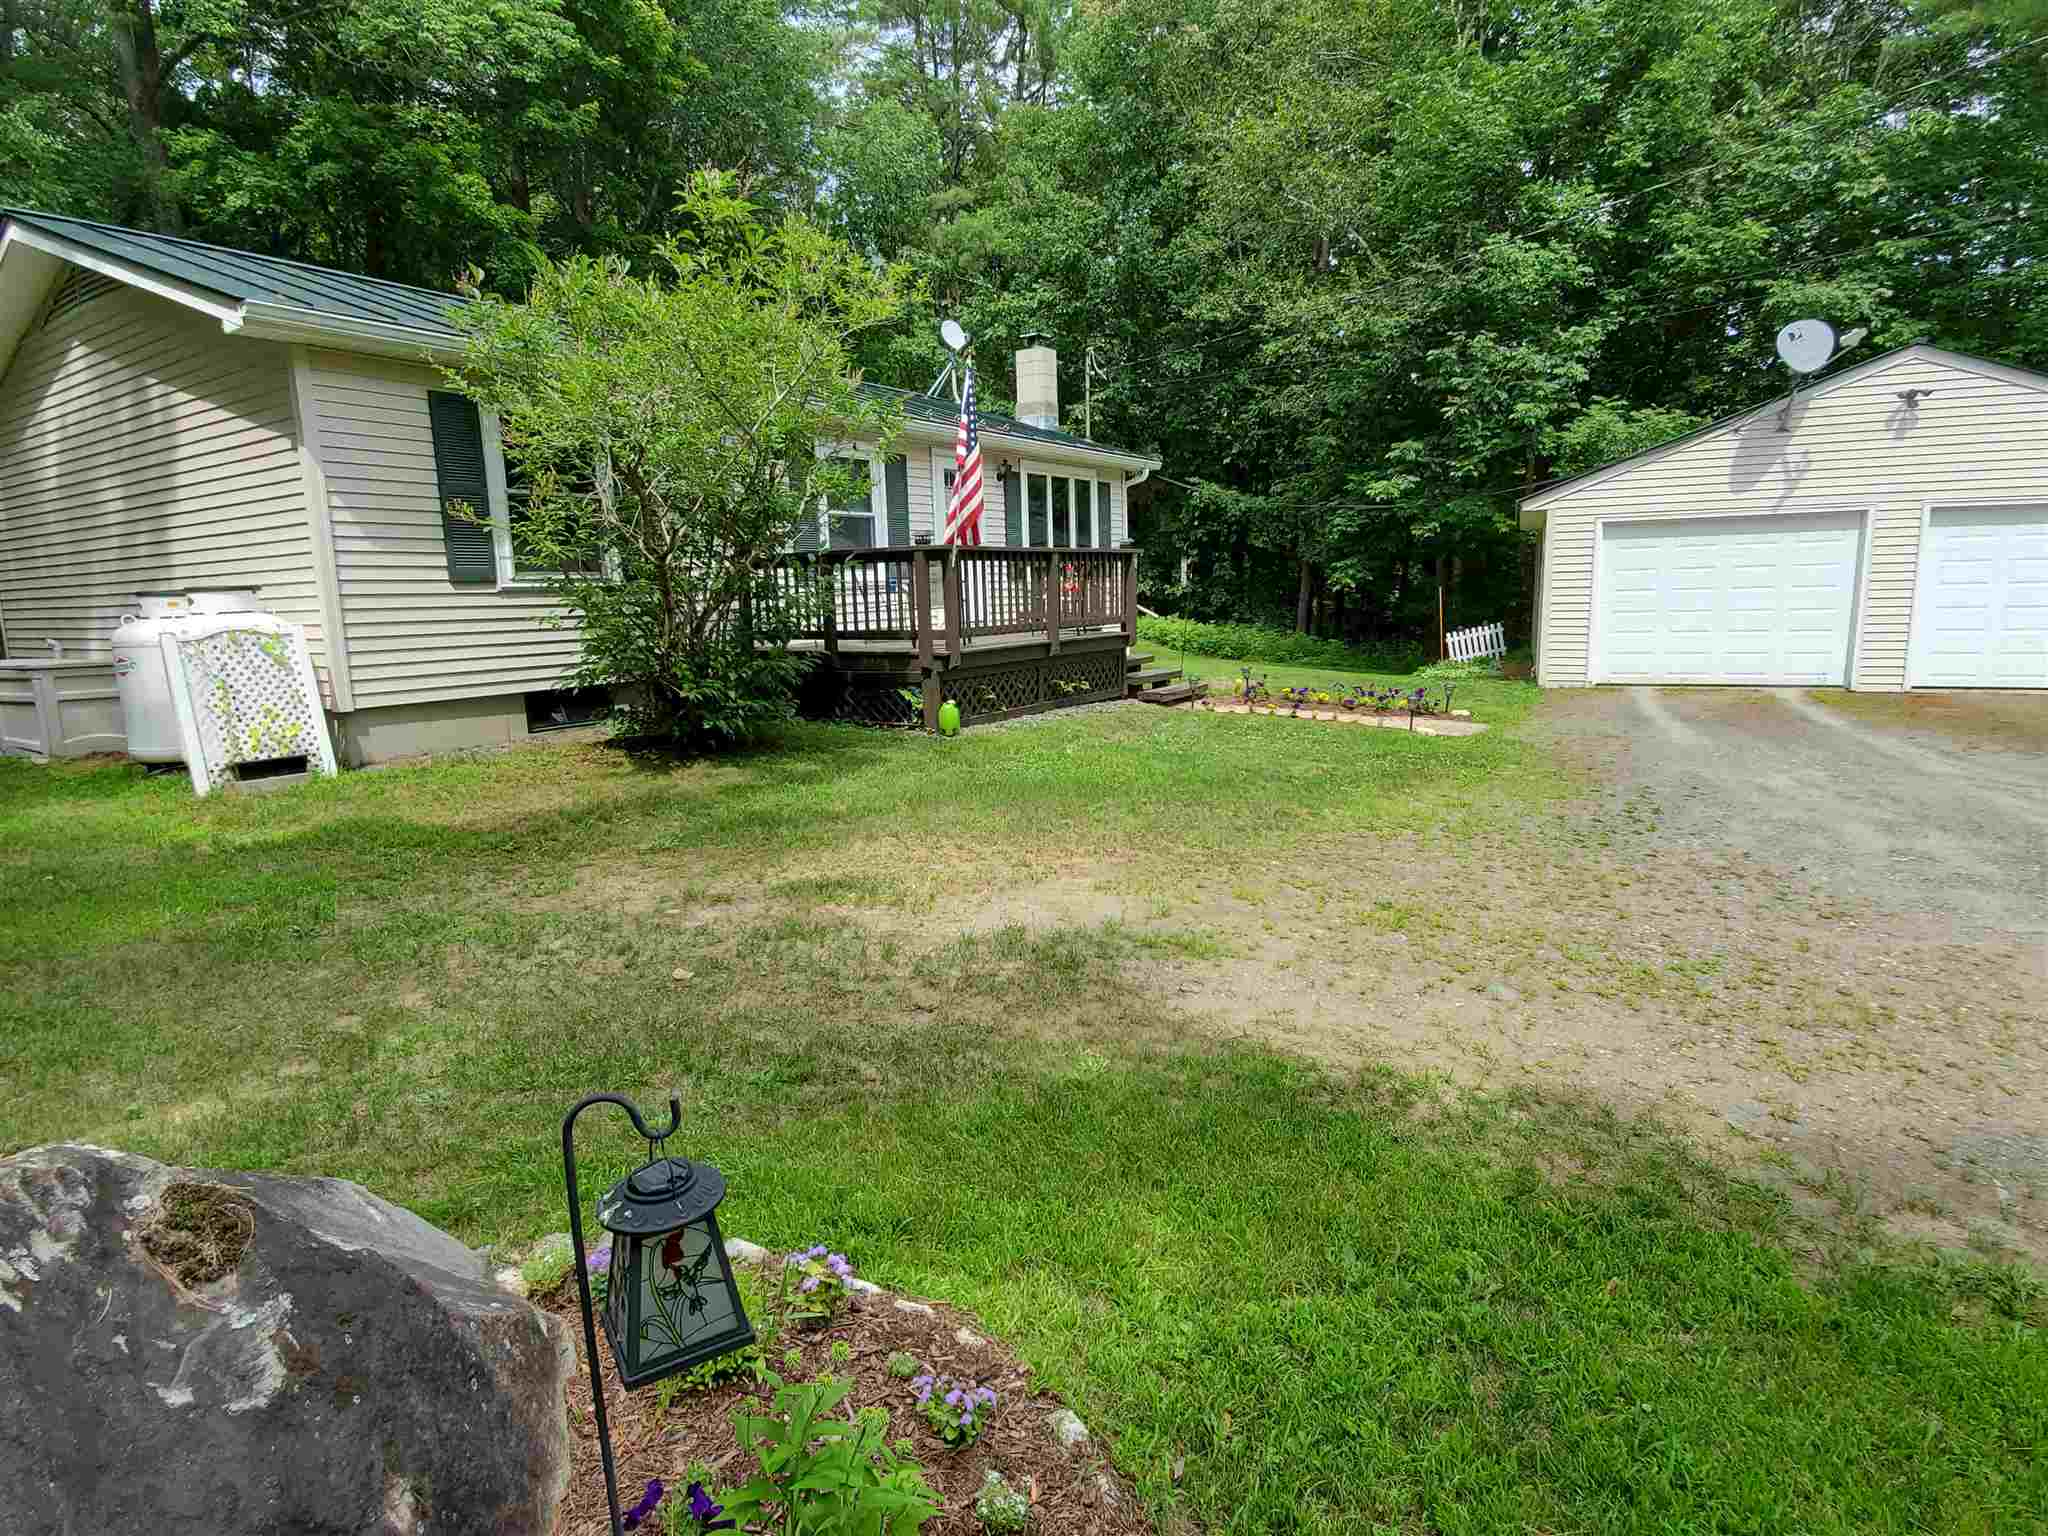 MLS 4819382: 8 King James Road, Enfield NH